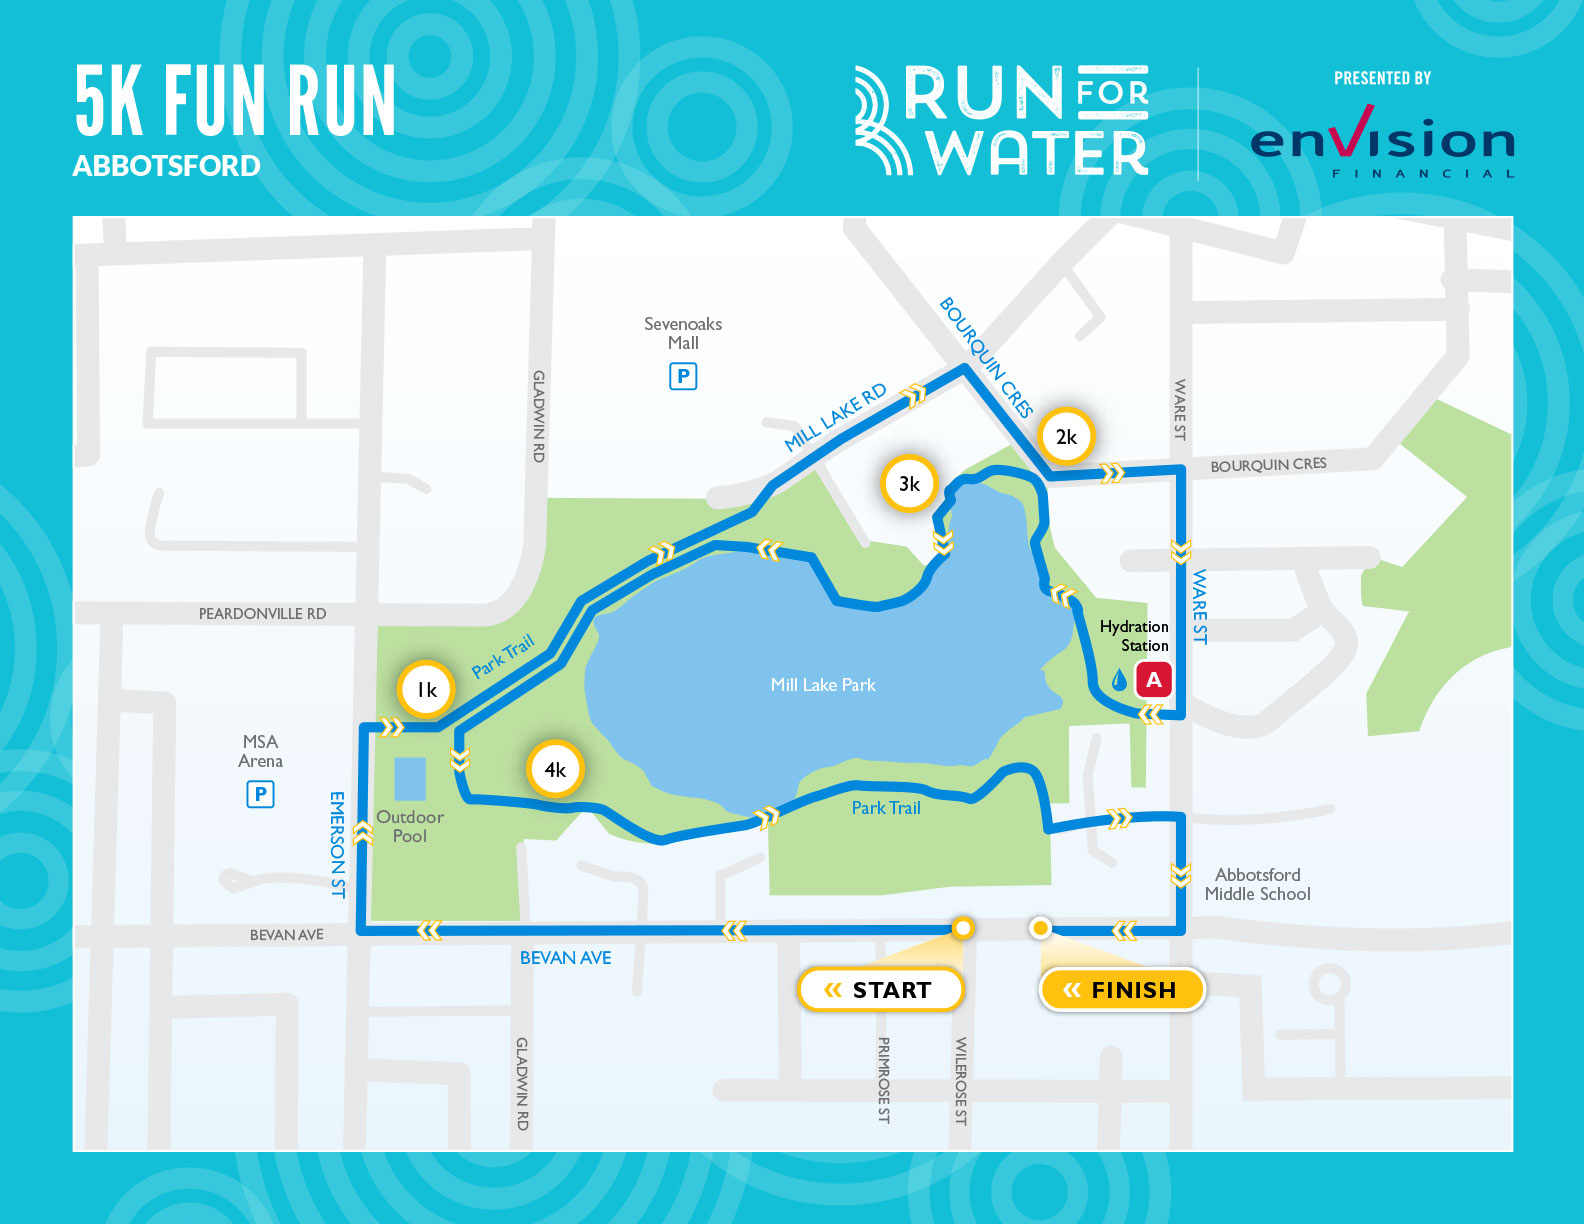 5K Fun Run route map